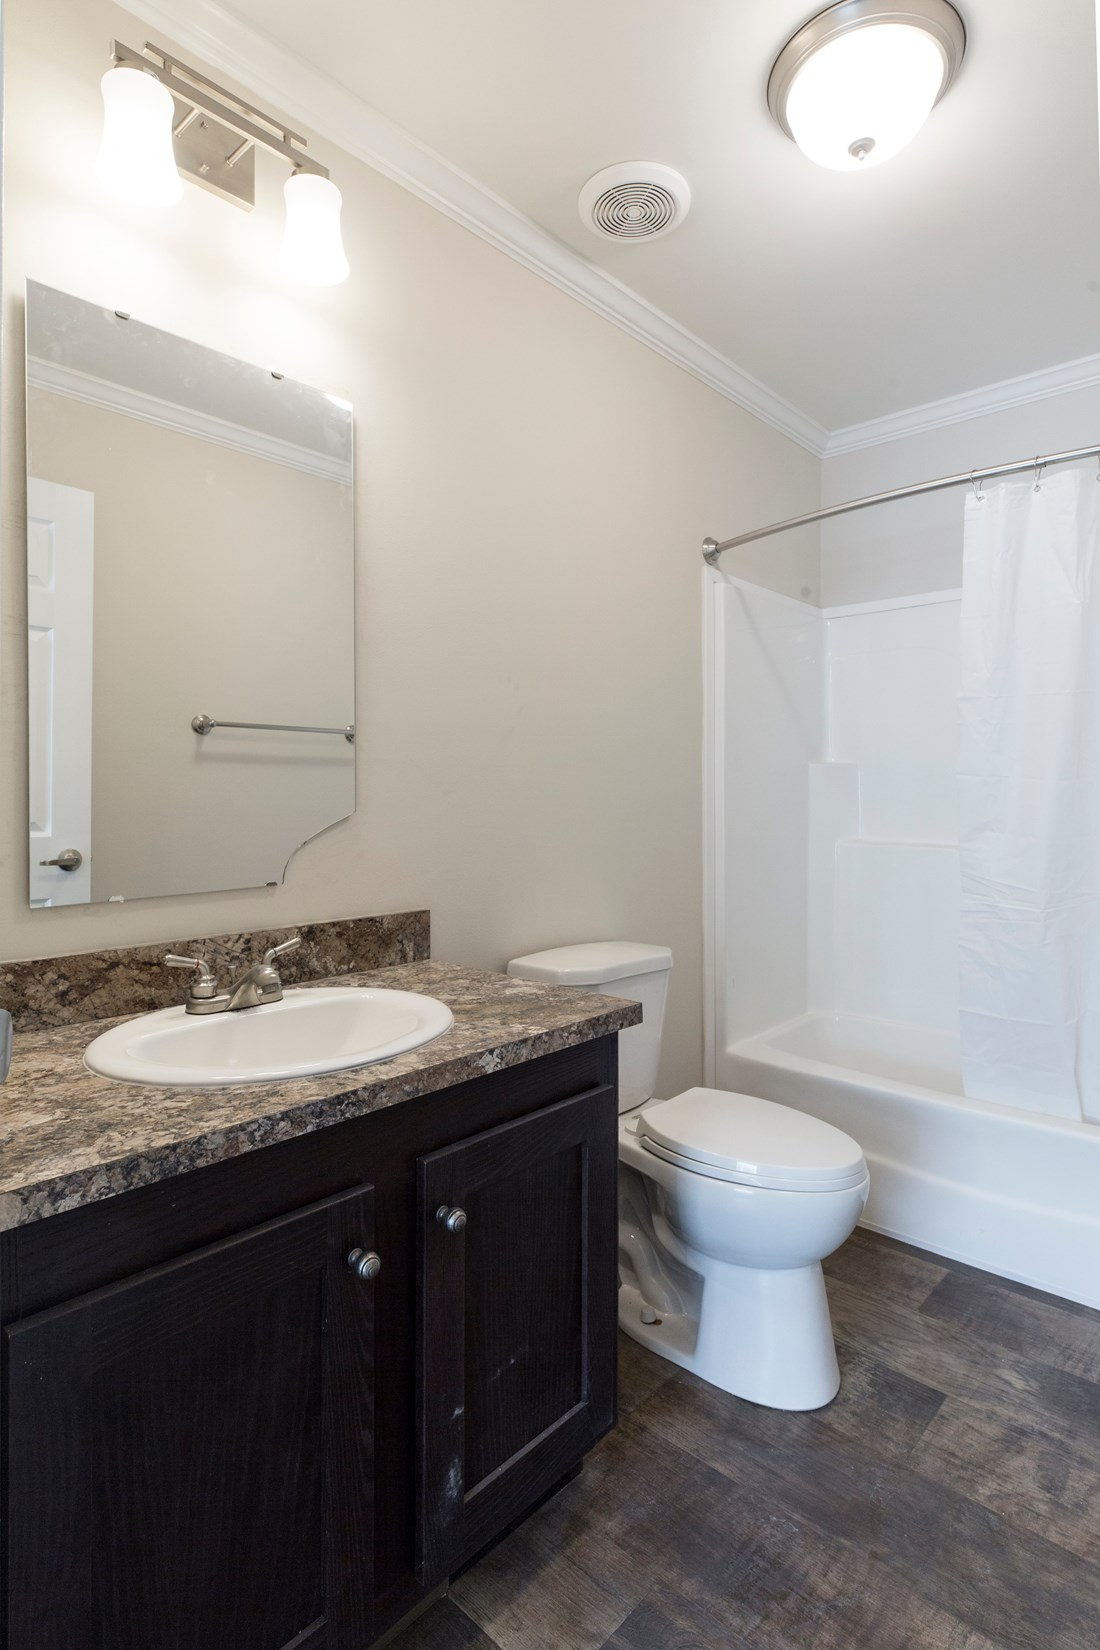 The 2089 52X28 3+2 HERITAGE Guest Bathroom. This Manufactured Mobile Home features 3 bedrooms and 2 baths.